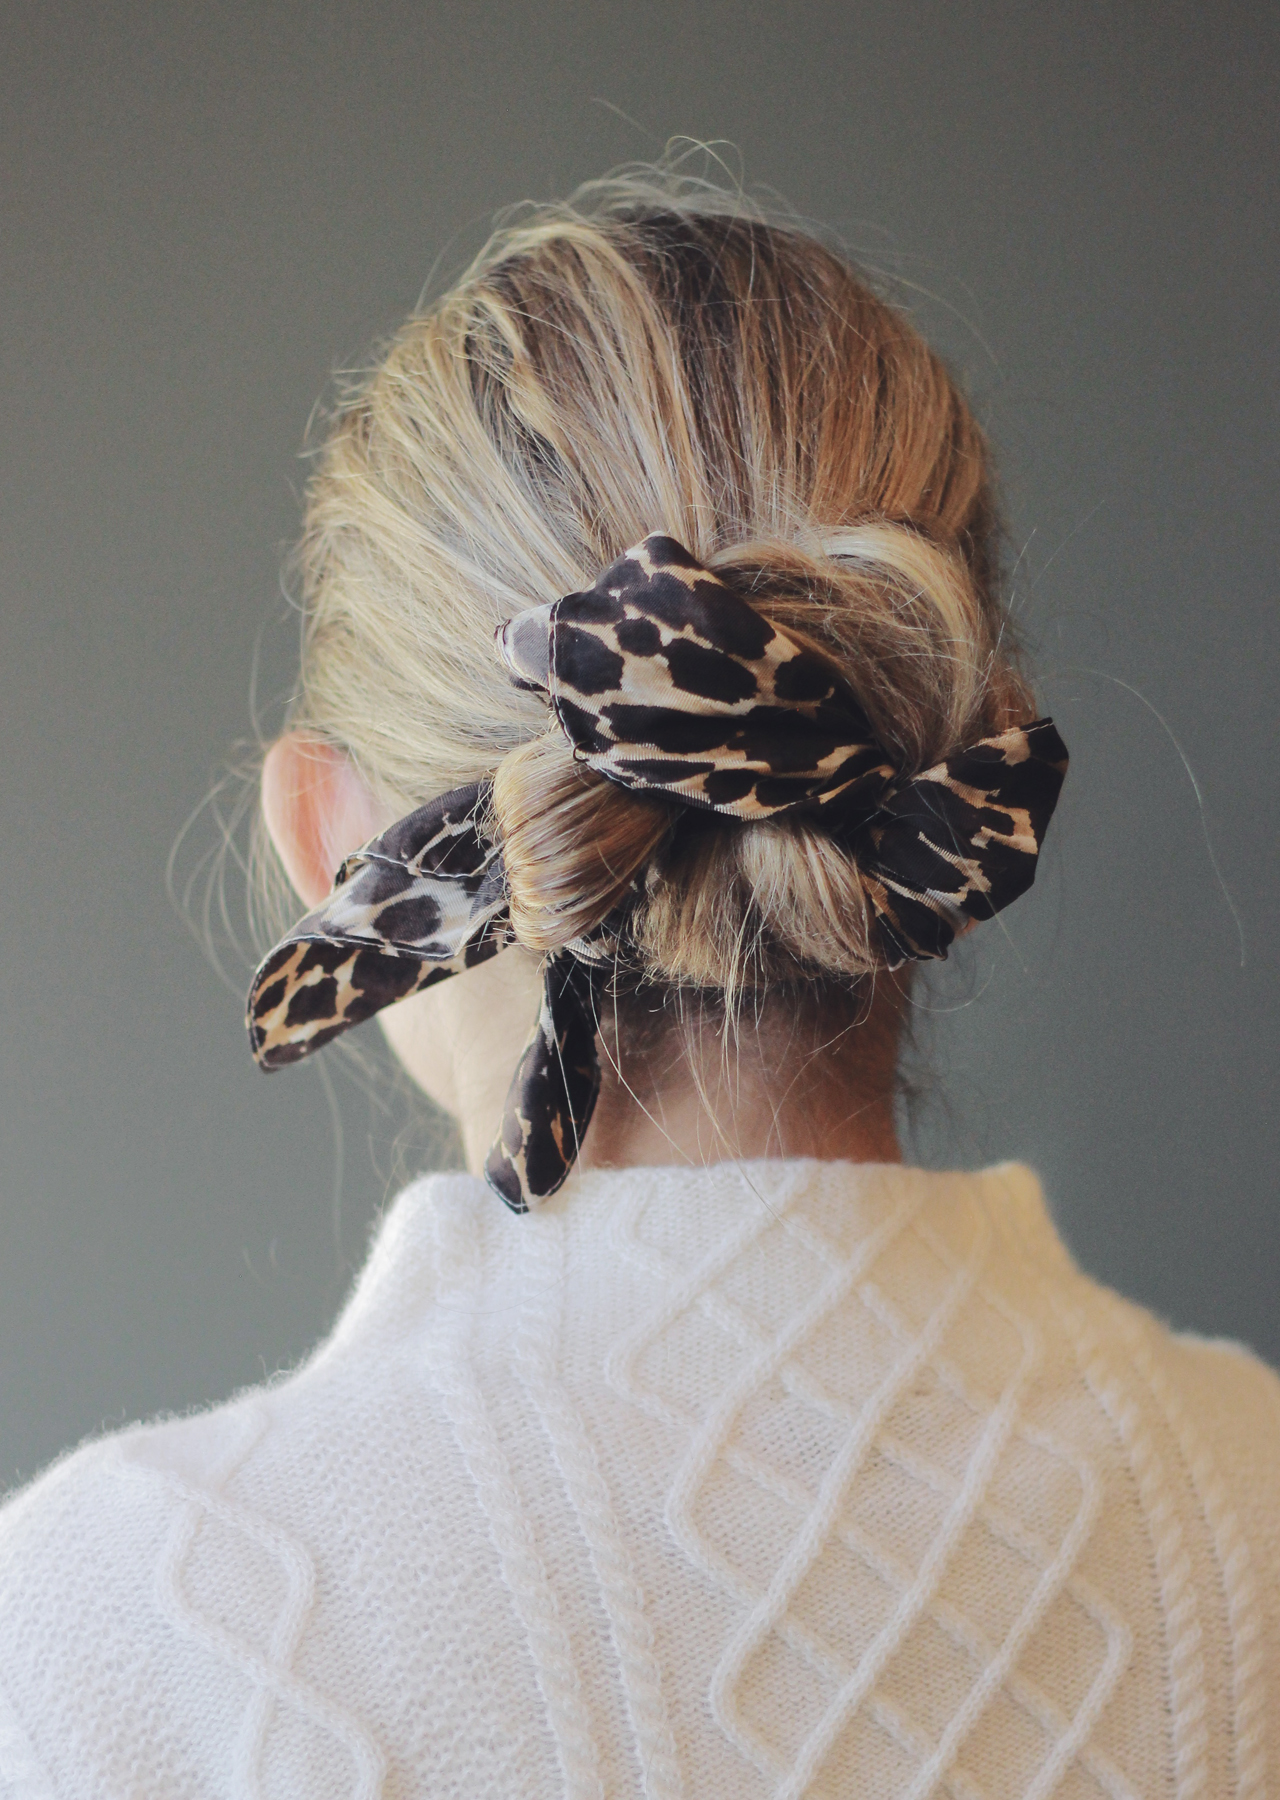 The Steele Maiden: 3 New Ways to Wear a Hair Scarf this Fall